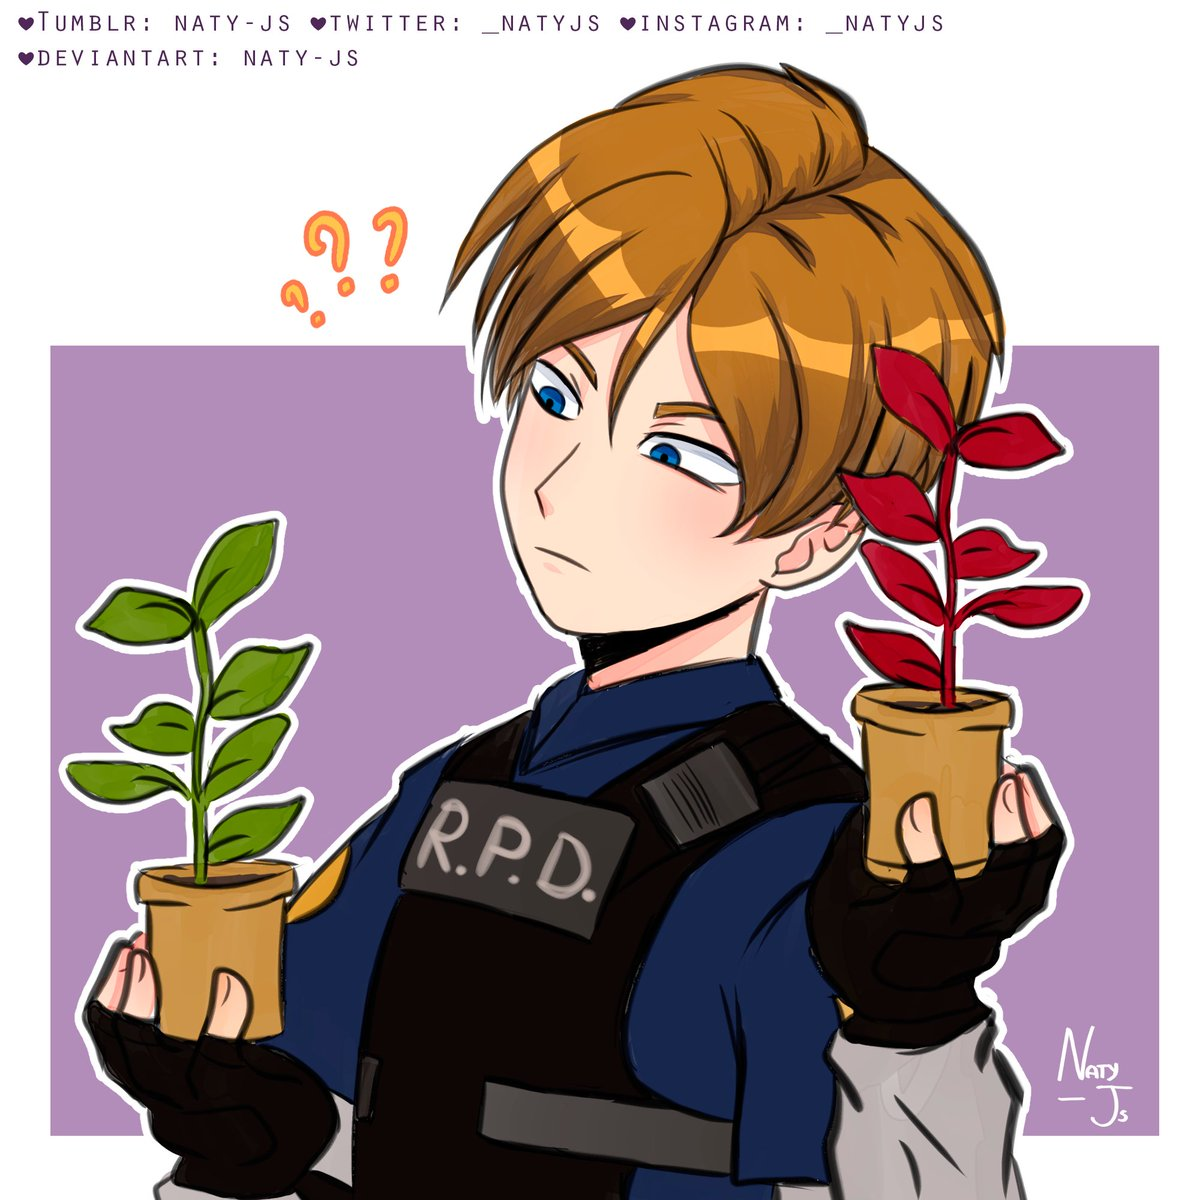 Naty Js On Twitter Leon S Kennedy Don T Copy Repost Or Edit My Artwork I Don T Play The Game Yet But I M Excited To Do It P S I Love Leon